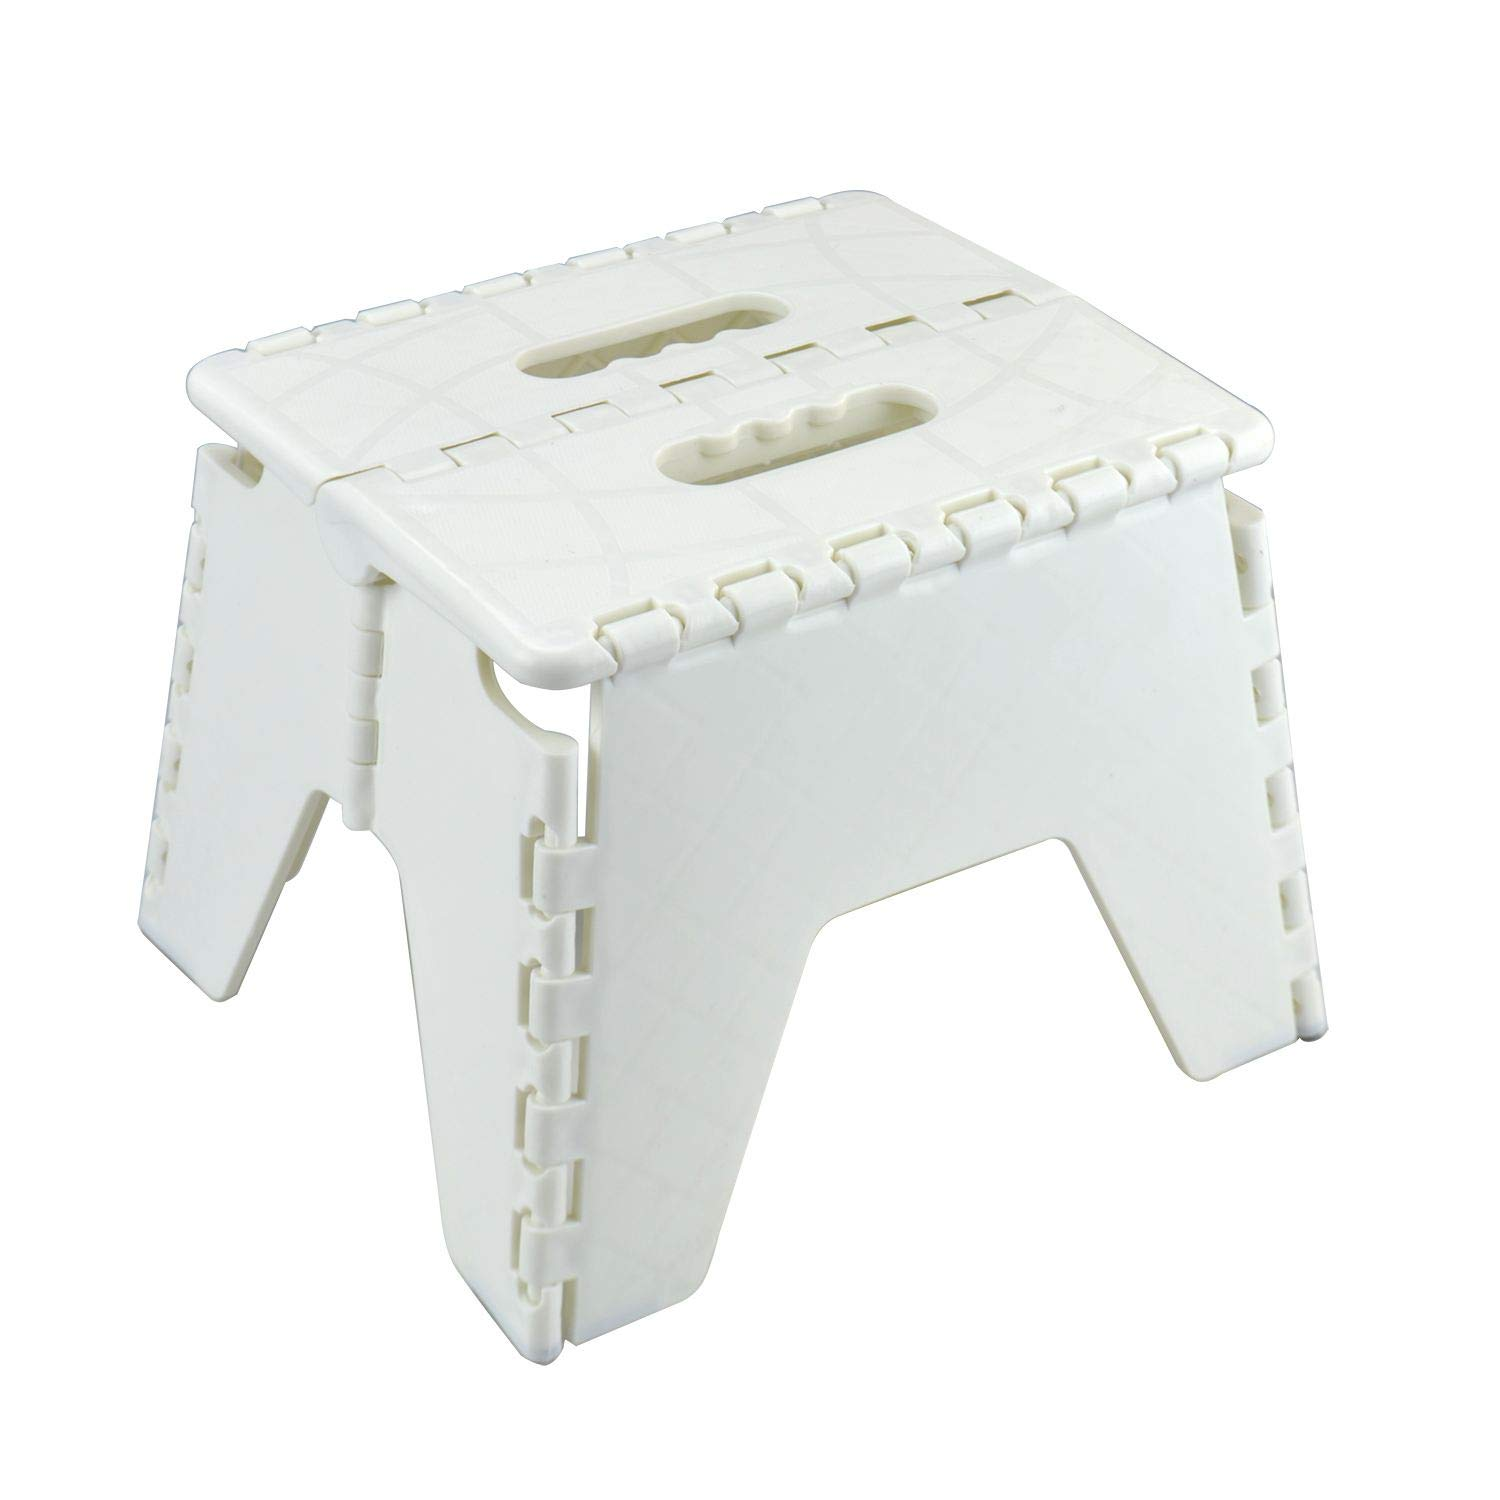 Remarkable Details About Asab One Step Folding Plastic Stool Portable Fold Up Footstool Asab White Creativecarmelina Interior Chair Design Creativecarmelinacom